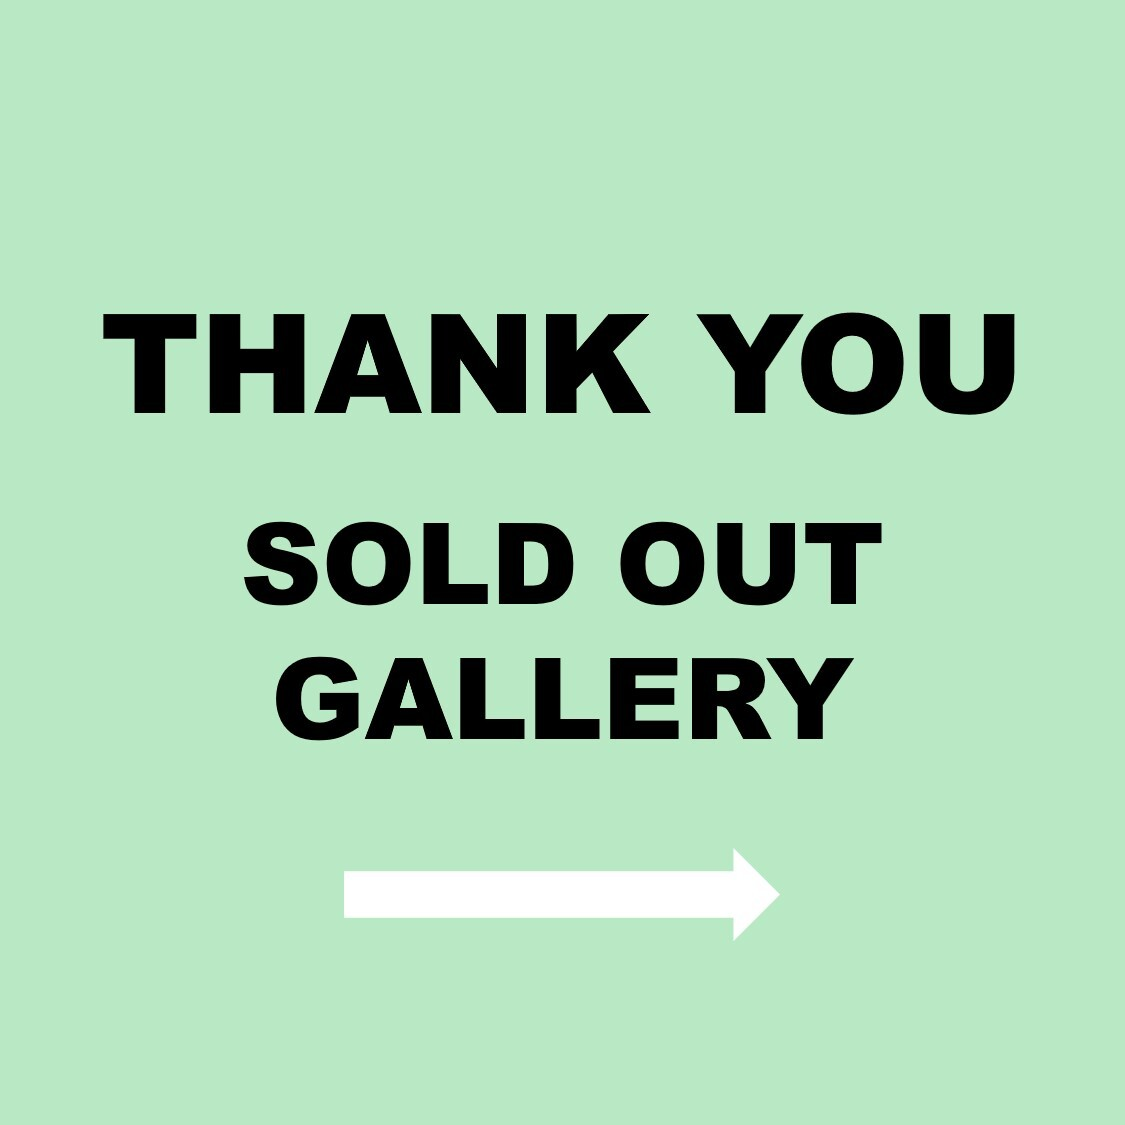 THANK YOU Sold out gallery ➡